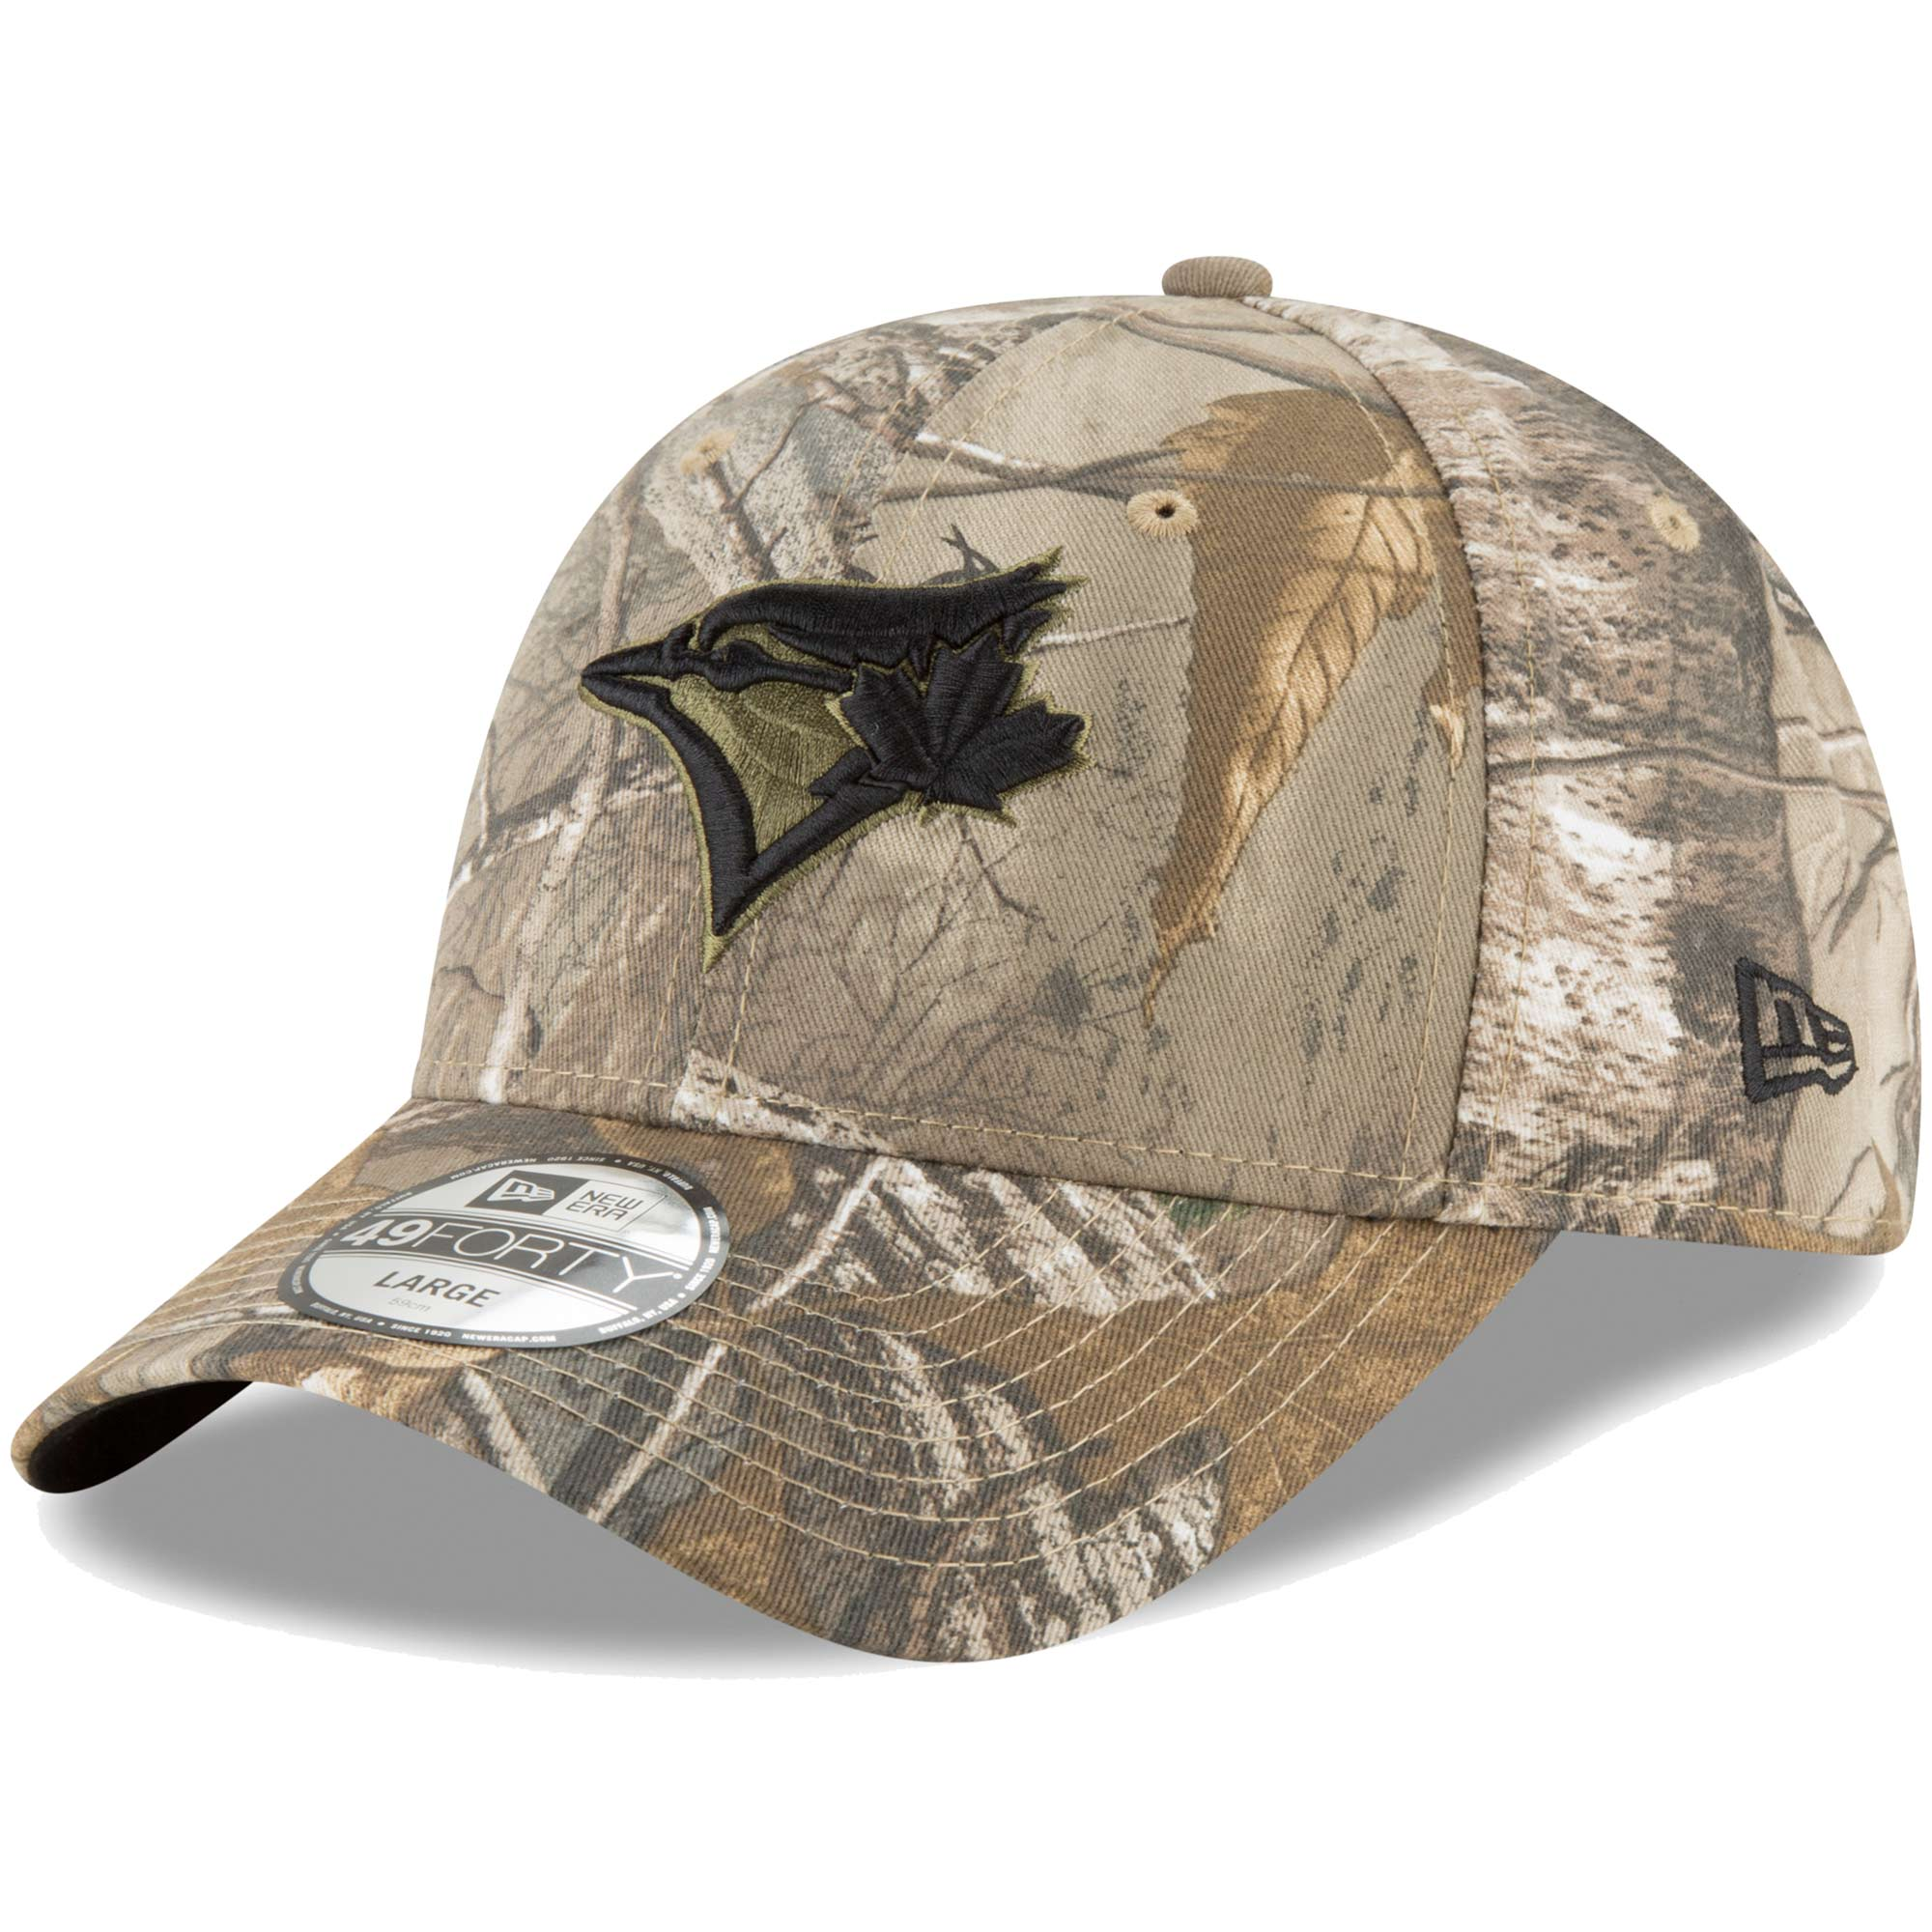 Toronto Blue Jays New Era Realtree 49FORTY Fitted Hat - Camo